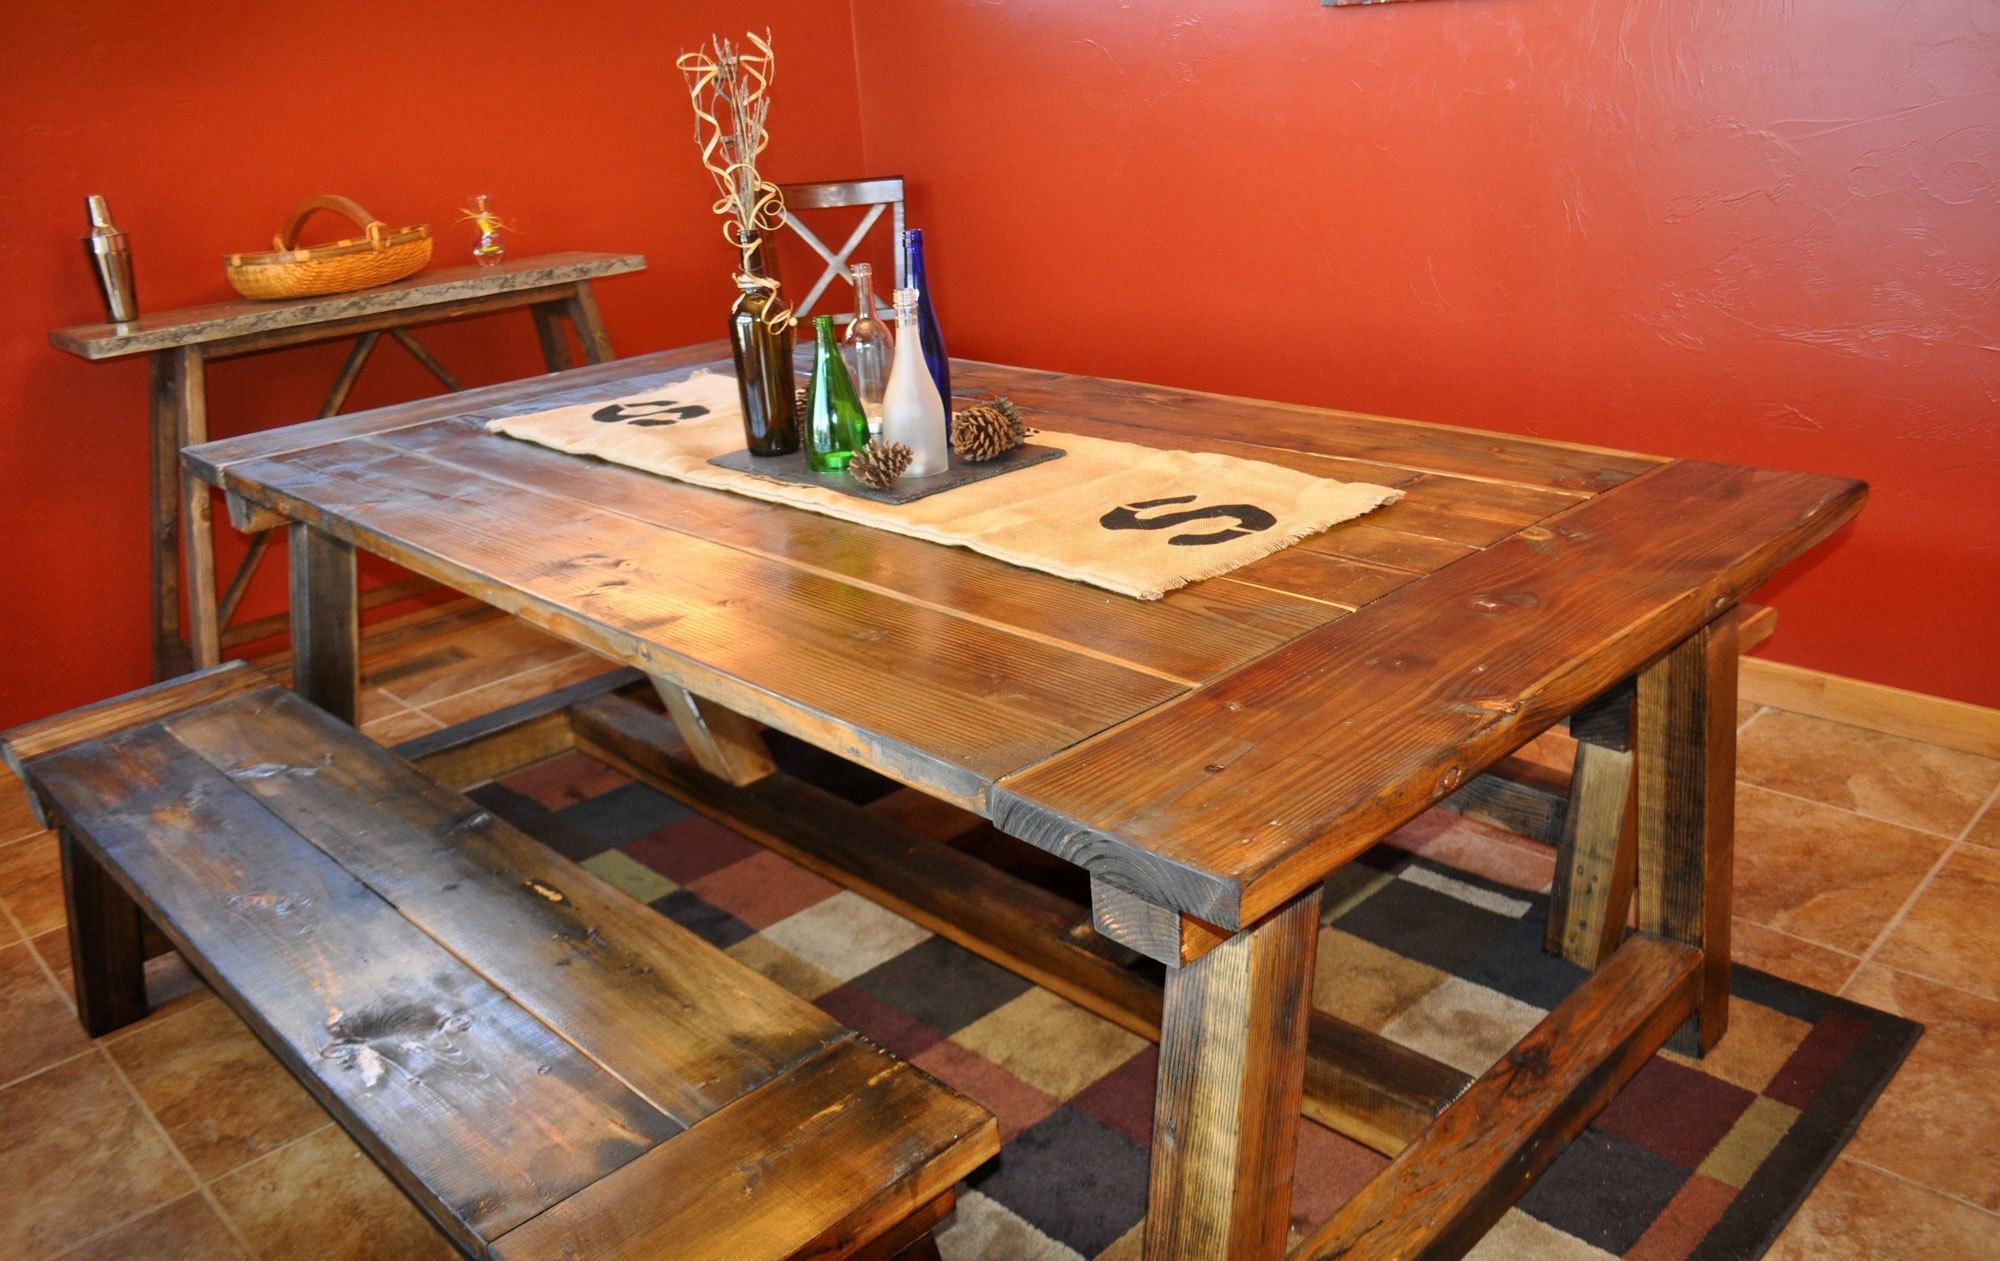 Table success do it yourself home projects from ana white diy 85 - Building And Creating With My Hands Has Always Been A Passion Of Mine And Something I Love Sharing With Others When I Stumbled Upon Plans For The Table I